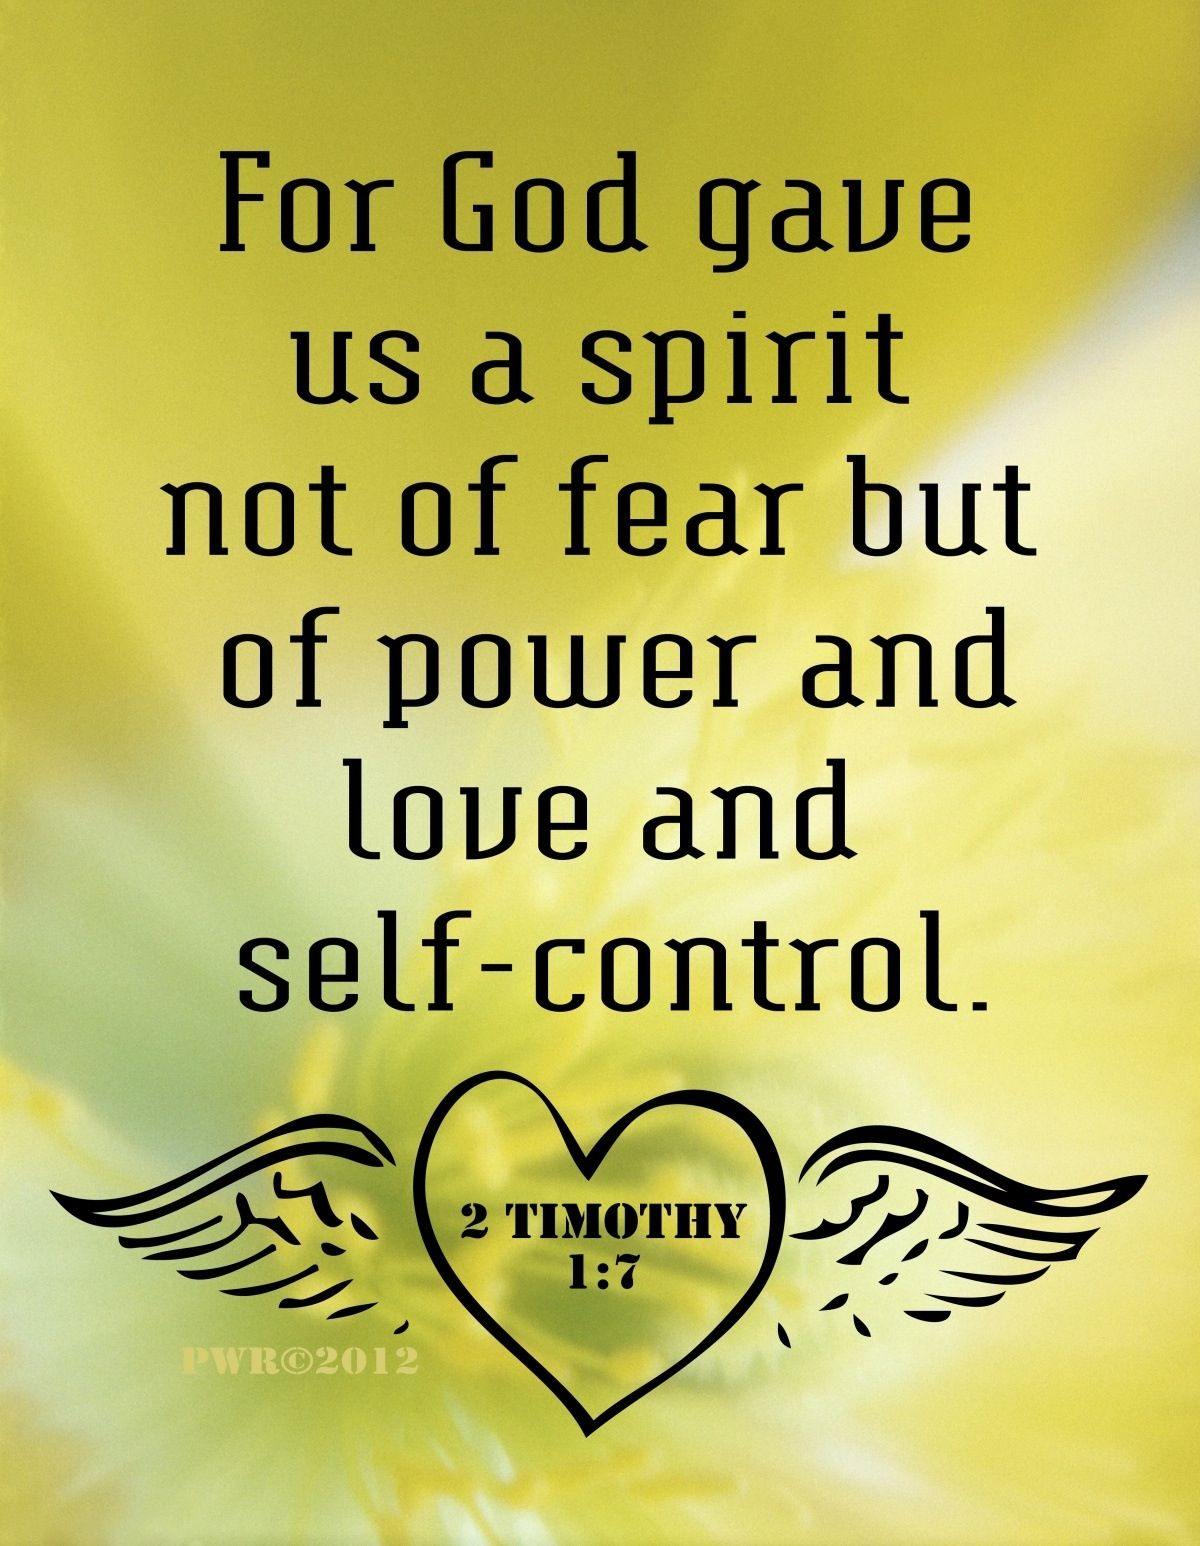 Love And Self Control 2 Timothy 1 7